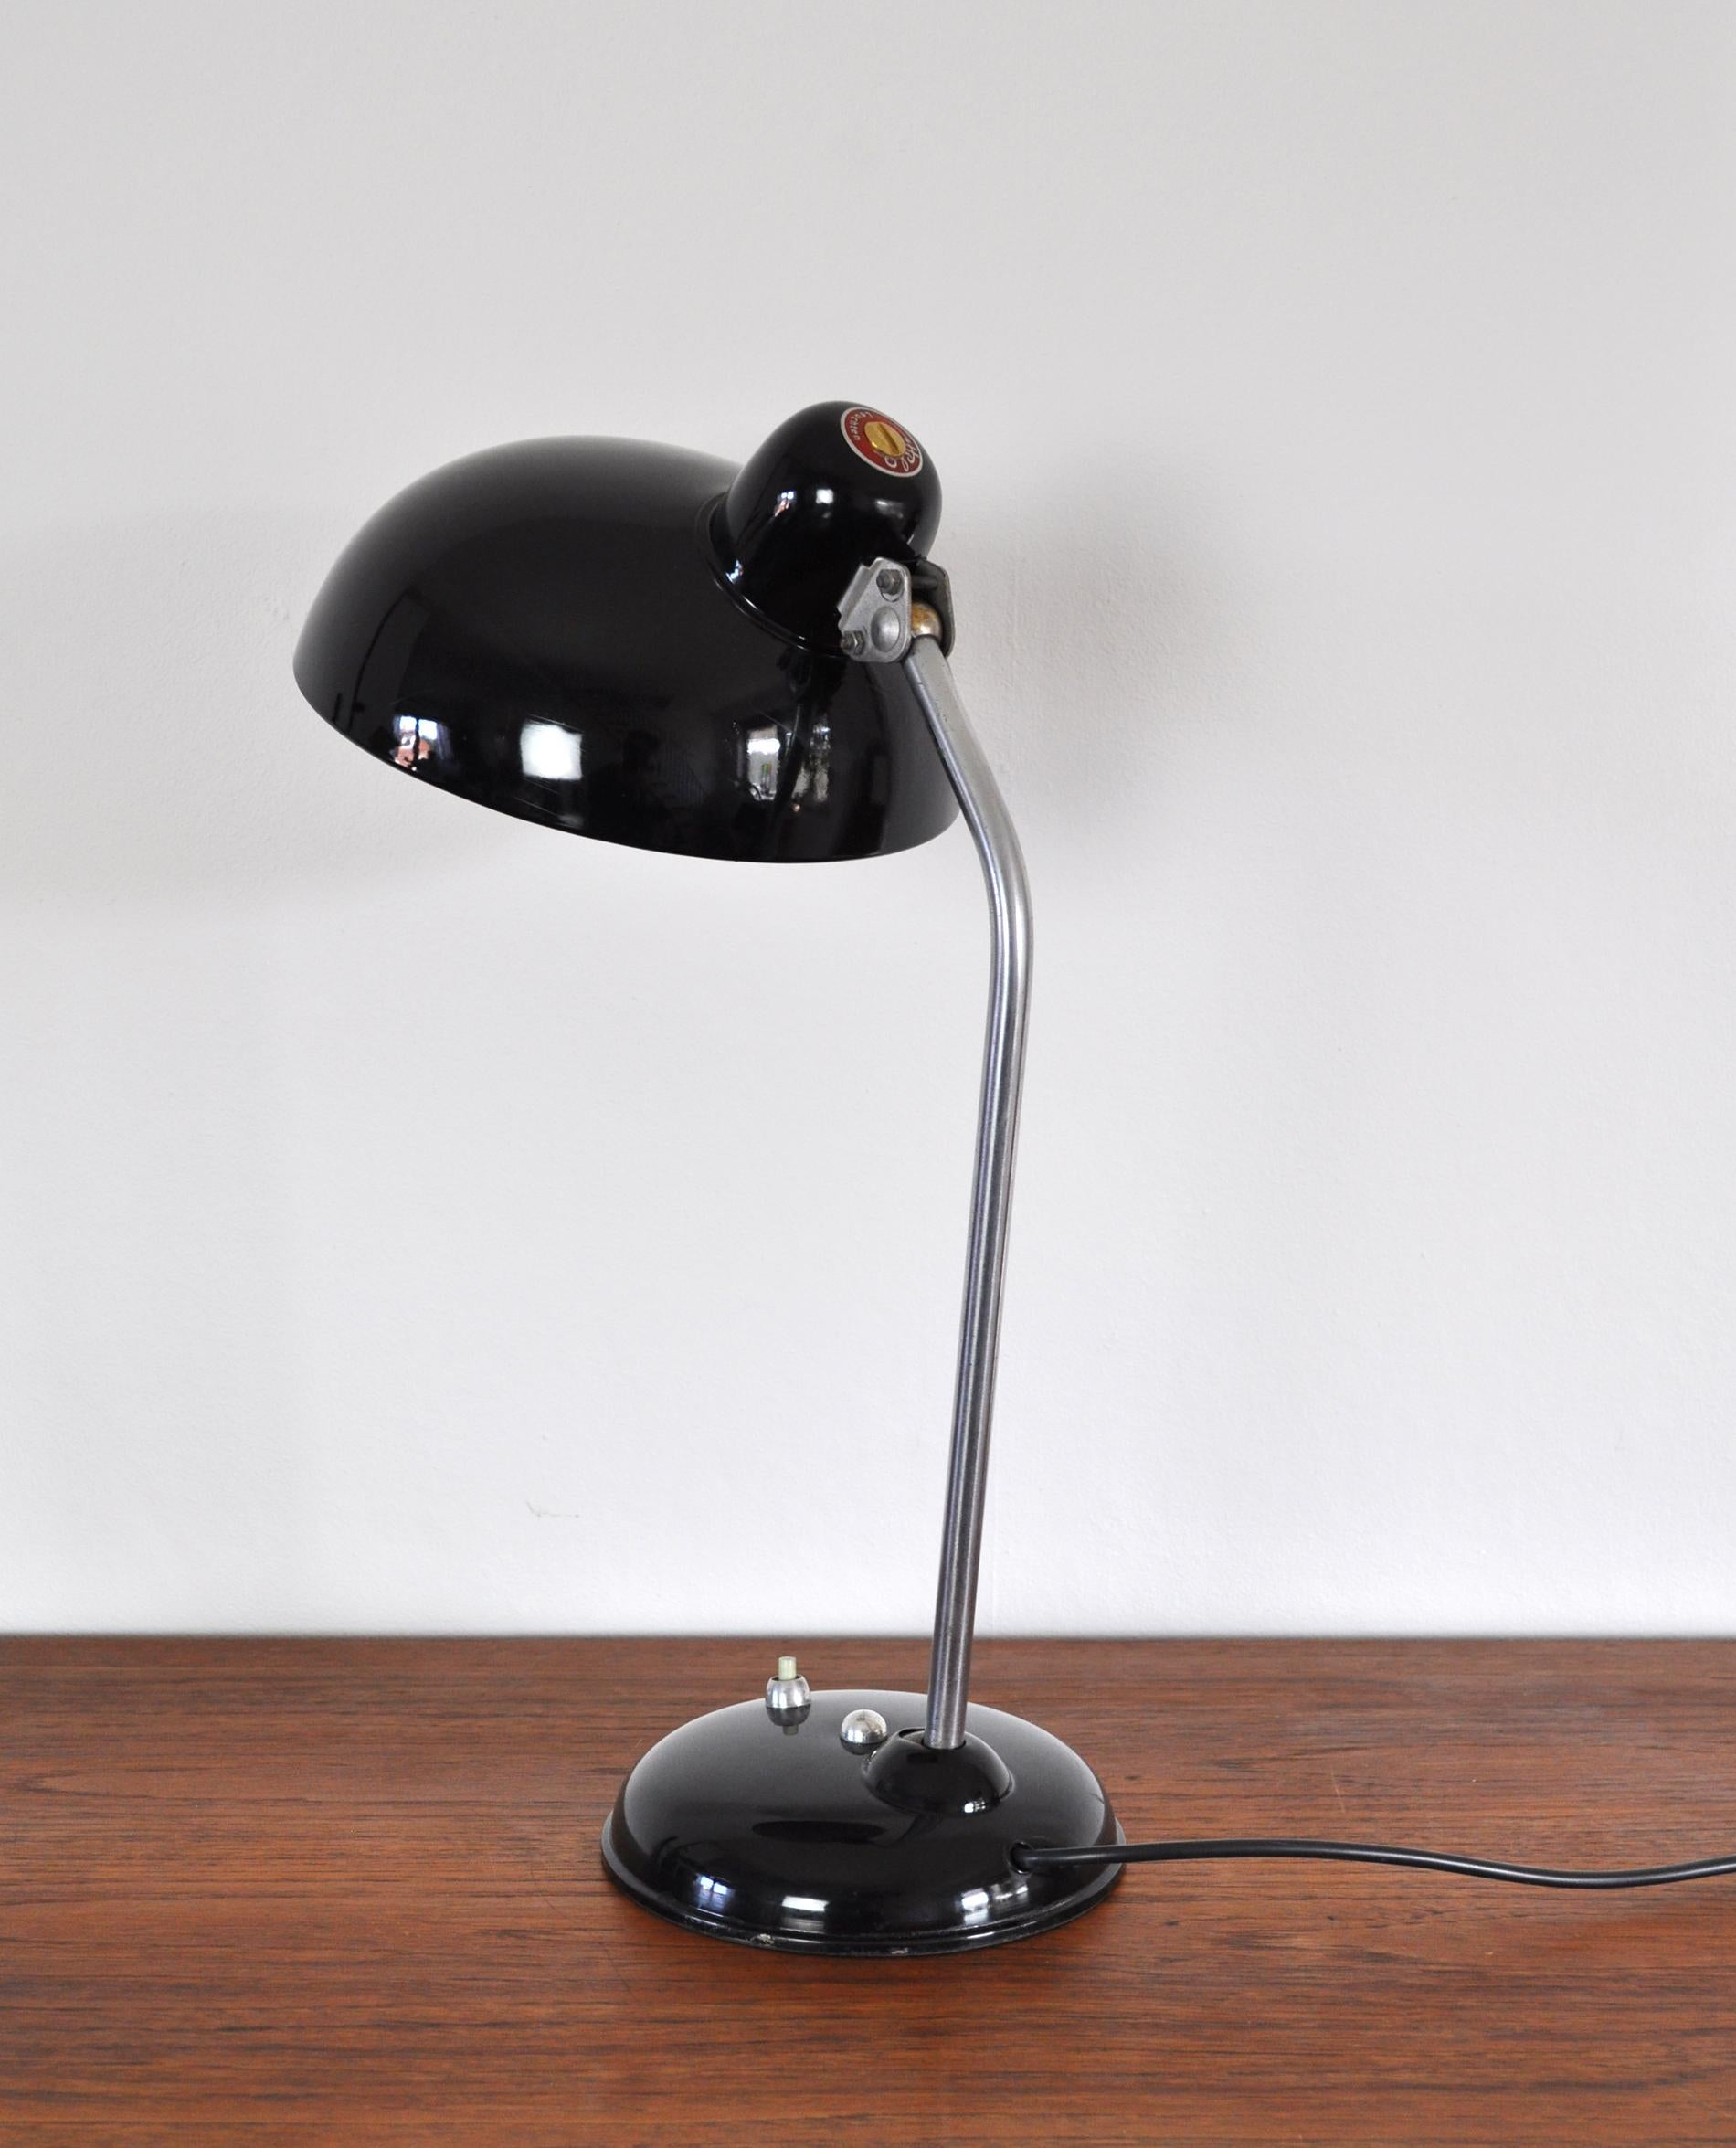 Leuchten Bauhaus Bauhaus Desk Lamp By Christian Dell For Helo Leuchten At ...